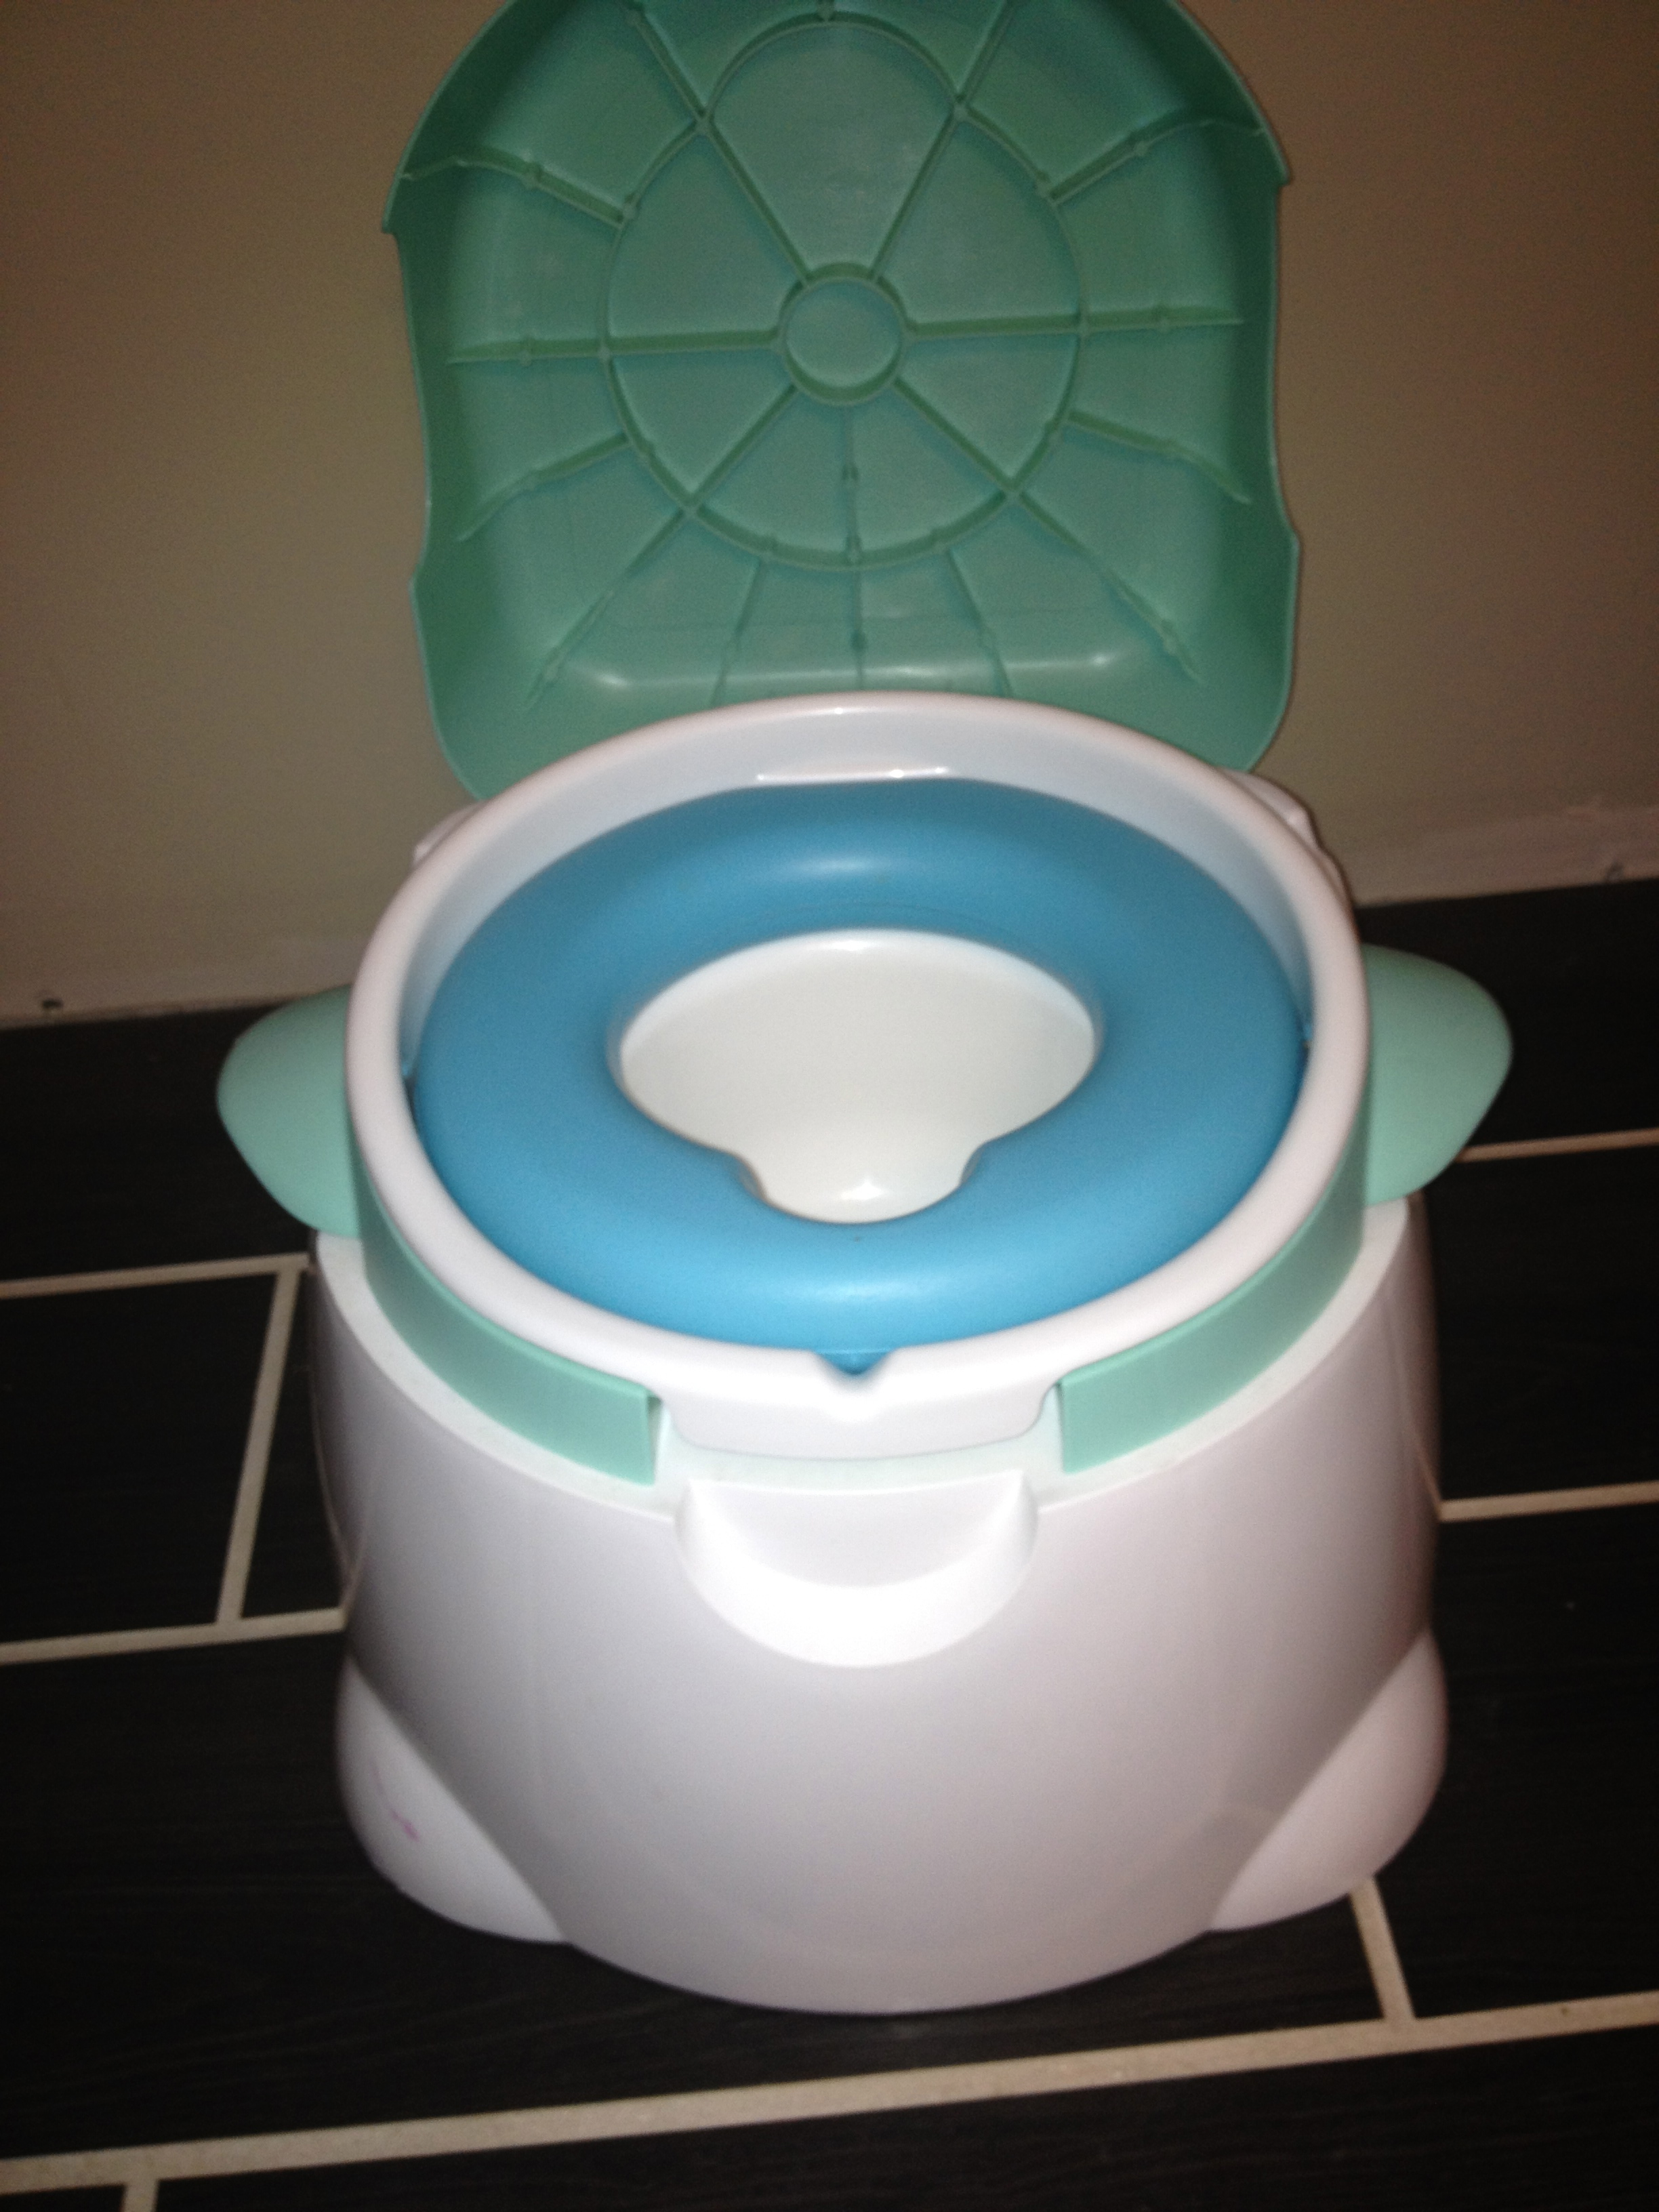 Potty Training is NOT for the Weak